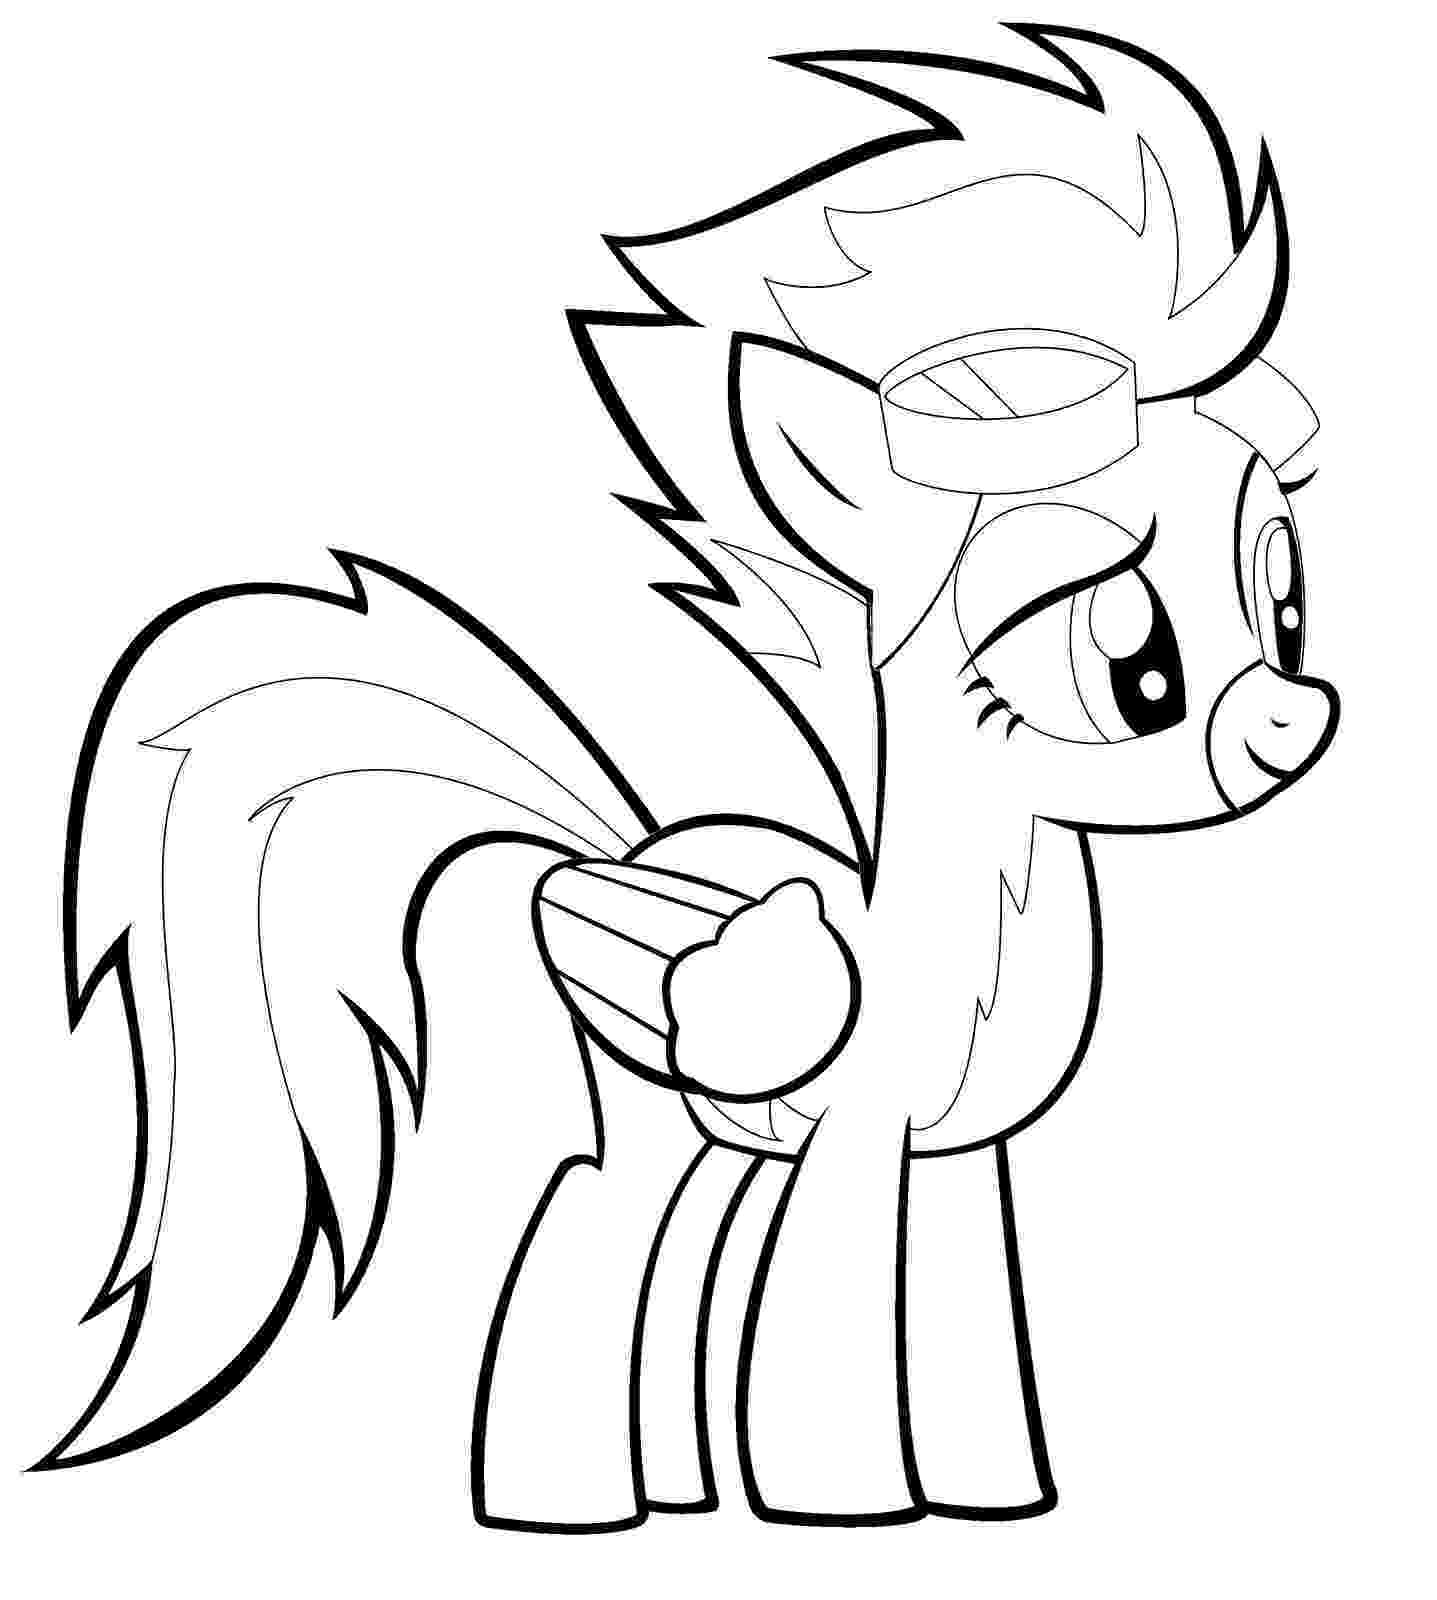 my little pony friendship is magic coloring pages rainbow dash my little pony rainbow dash coloring pages dash coloring friendship pony my pages rainbow magic little is